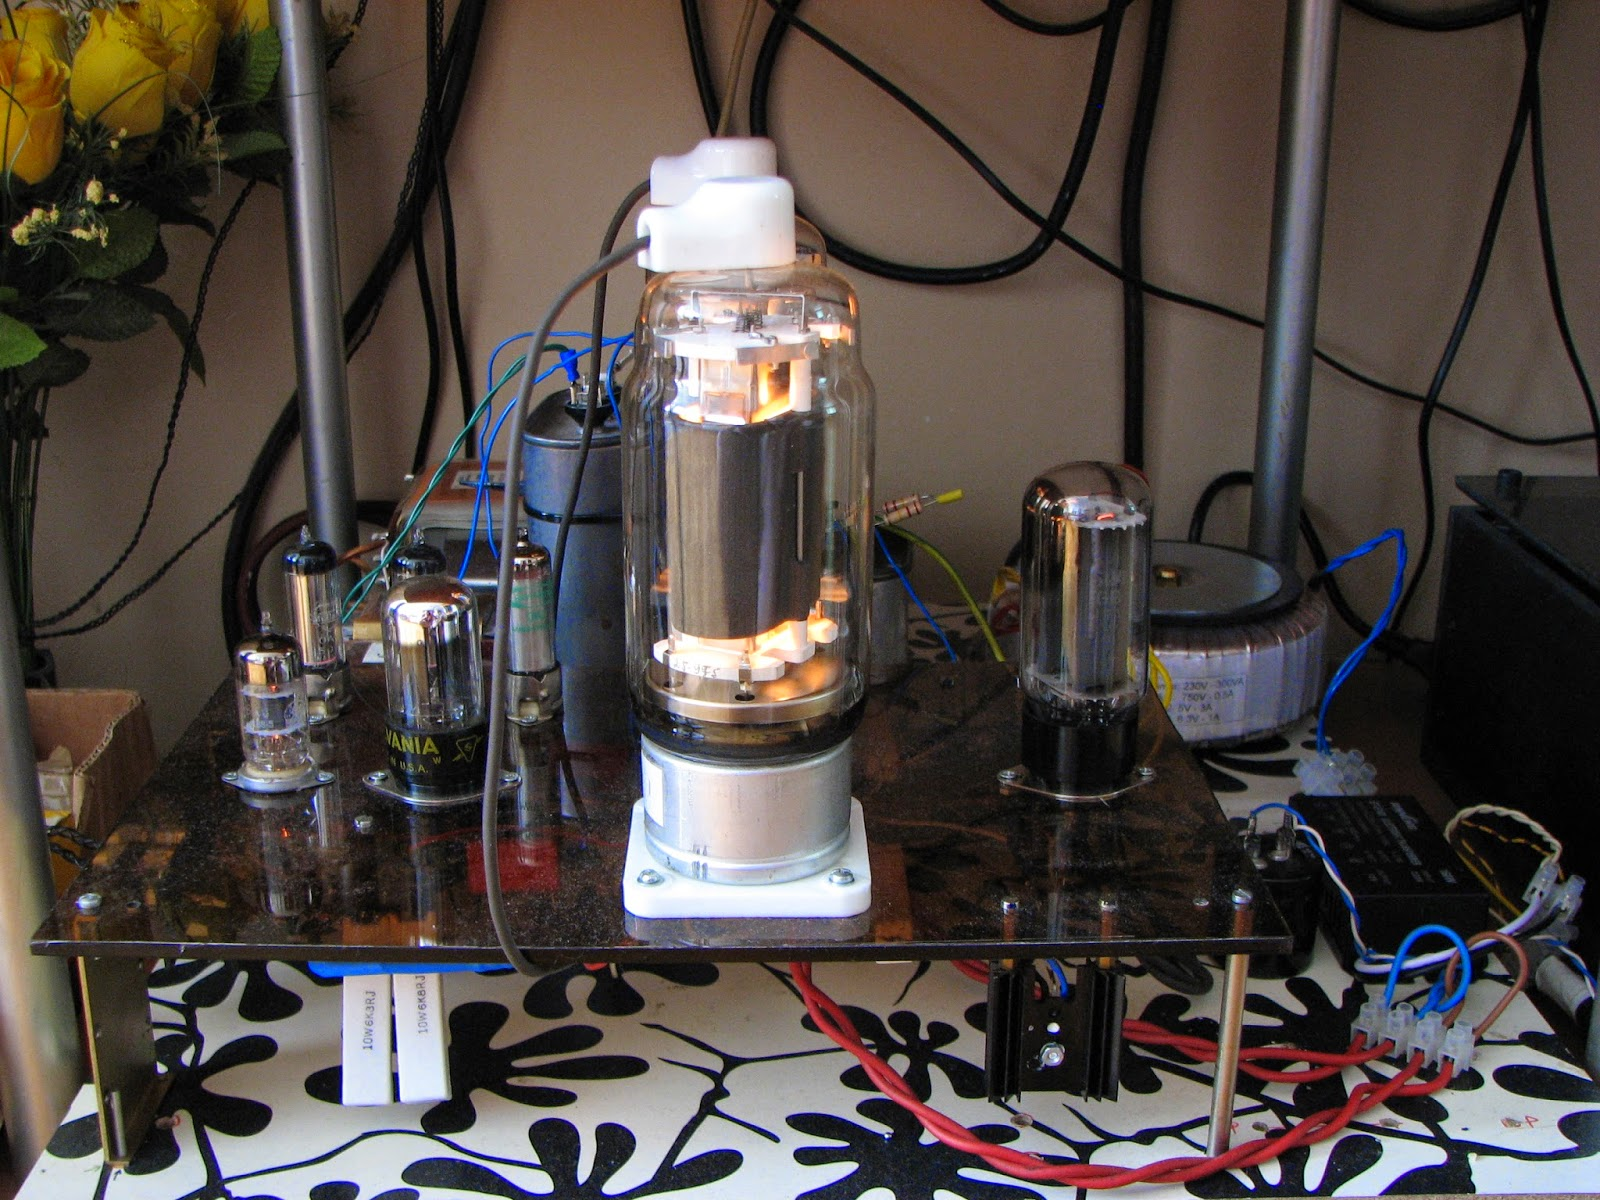 Rh Amplifiers Rh813 The Flagship Project Rectifier Circuit For Tube Amp Tubeamplifier Audiocircuit After Designing Several With Pentode And Beam Tetrode Output Tubes Trying Multiple Options In Universal Tta